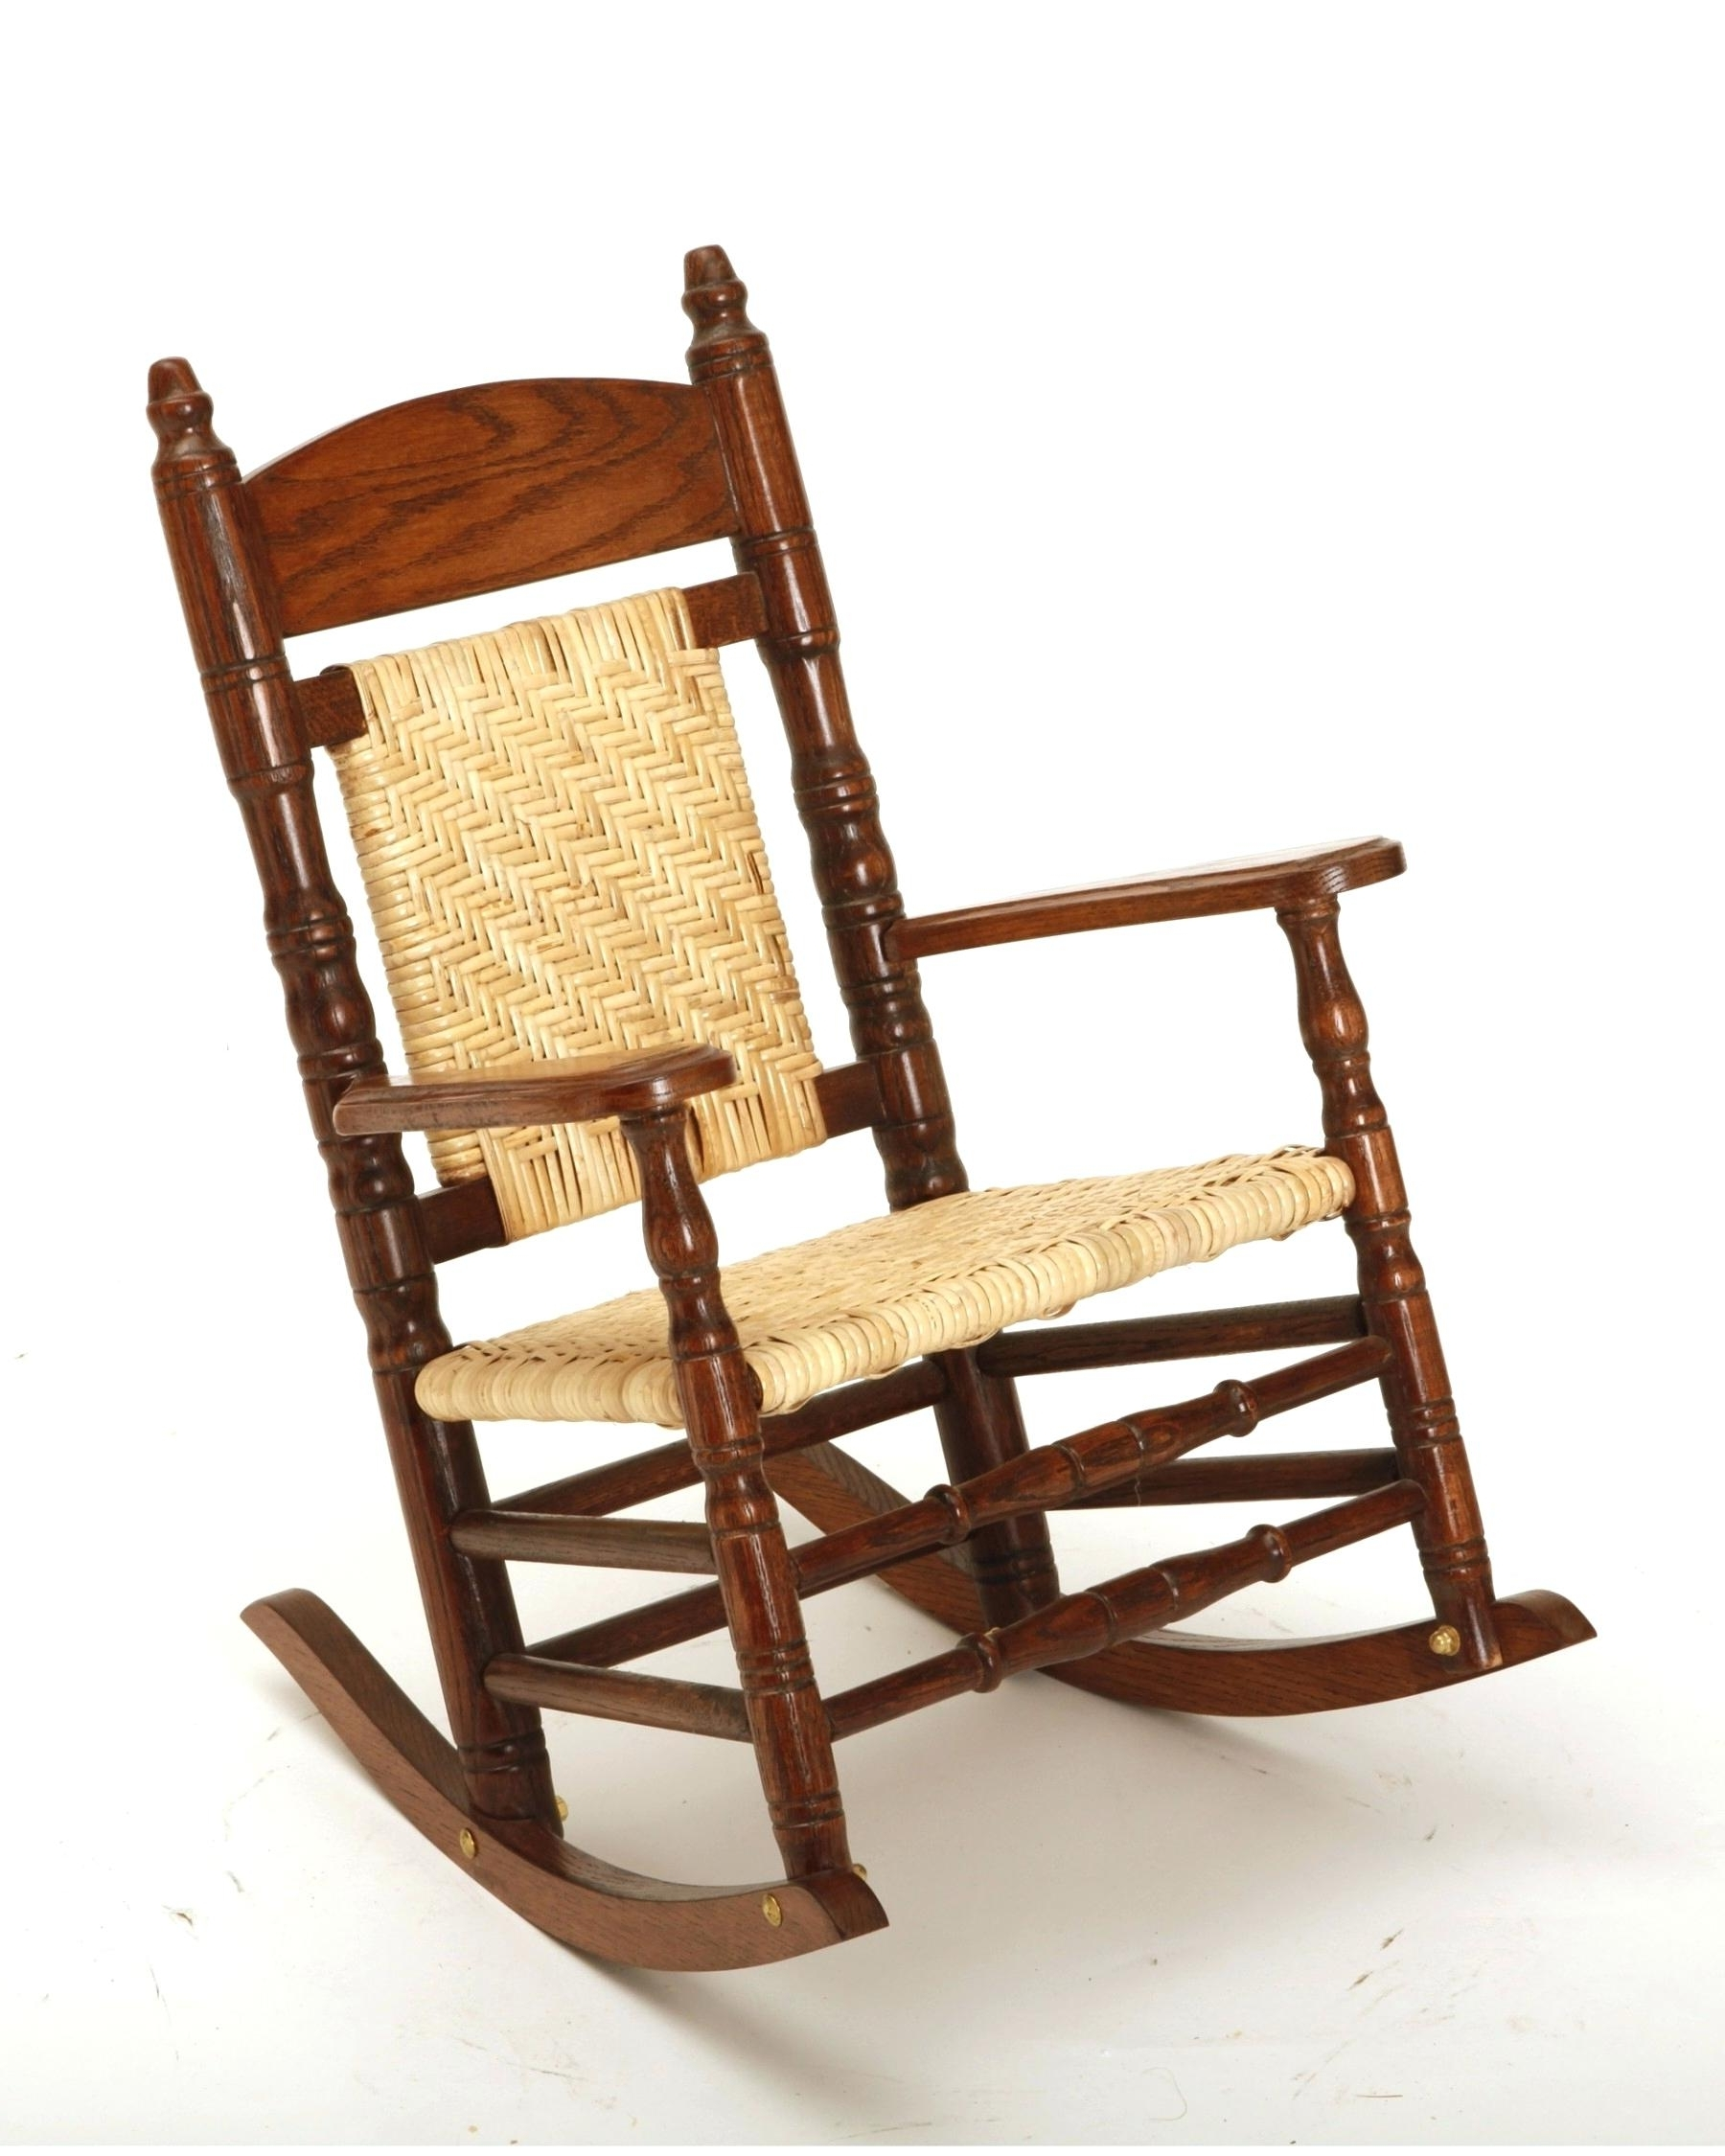 Heavy Duty Rocking Chair Interior Design Jobs Chicago App Doors Home Intended For Latest Manhattan Patio Grey Rocking Chairs (View 9 of 20)